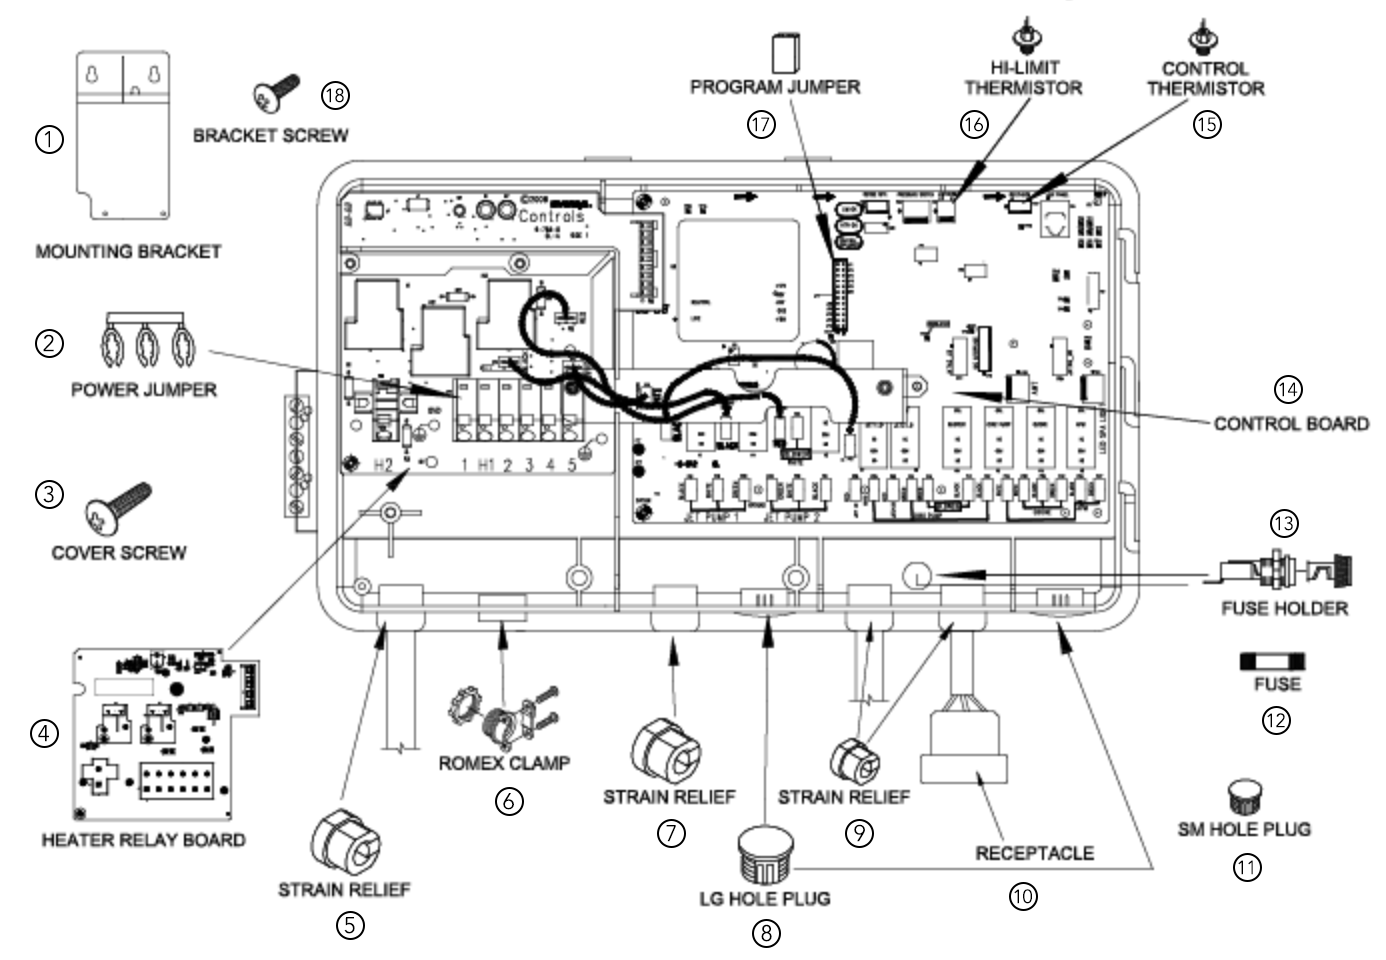 watkins spa wiring diagram